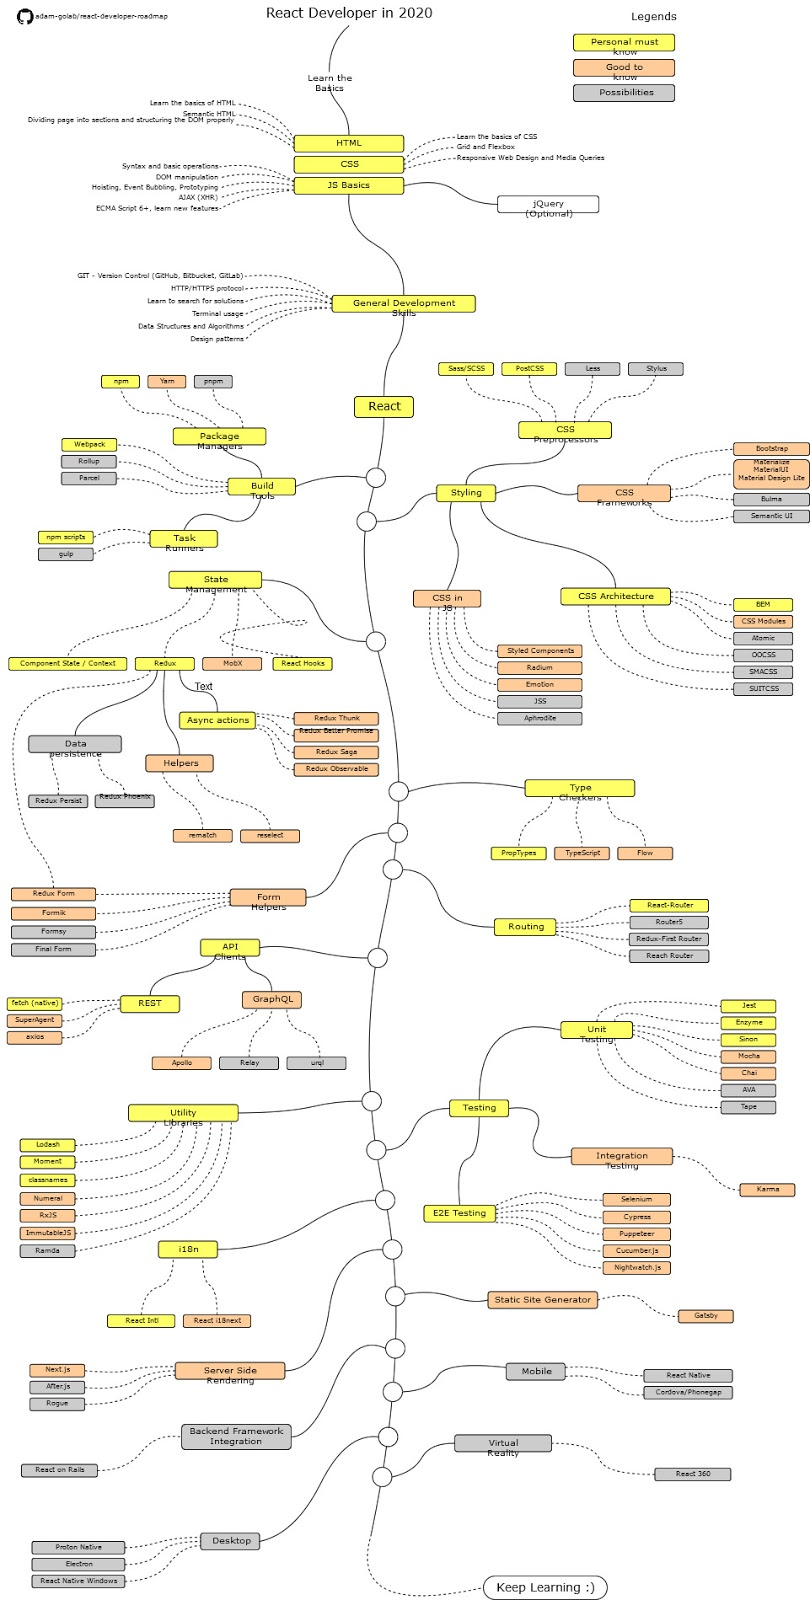 The 2020 React Developer RoadMap - Guide to become a Modern Frontend Web Developer